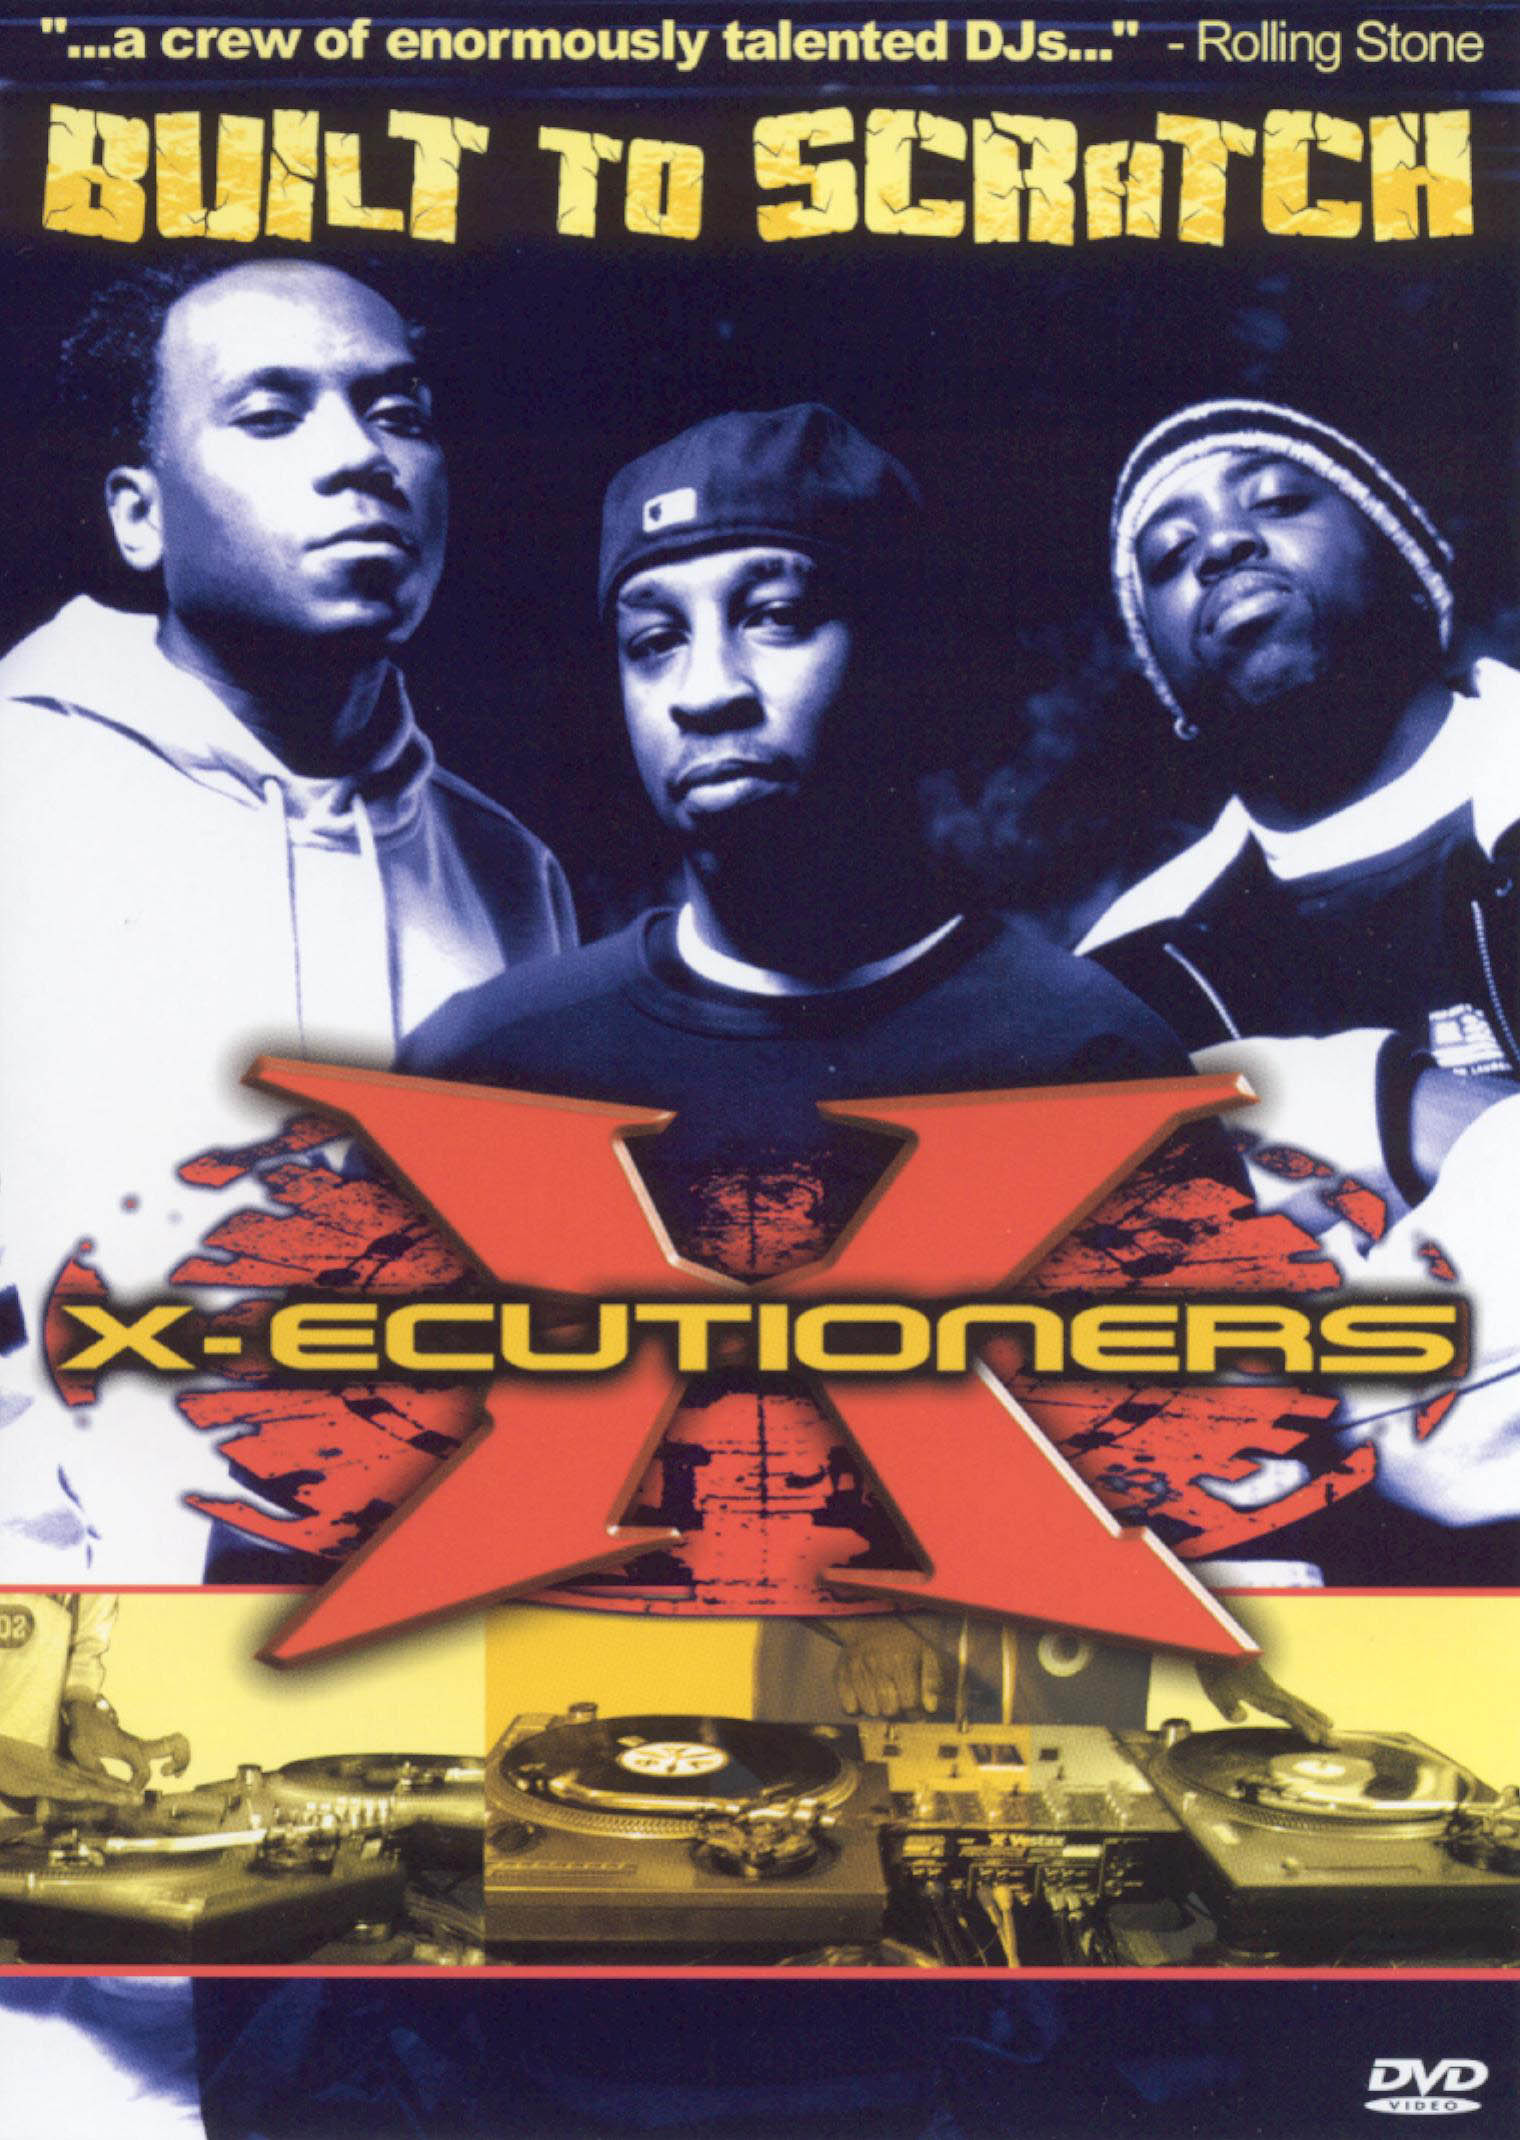 X-Ecutioners: Built to Scratch